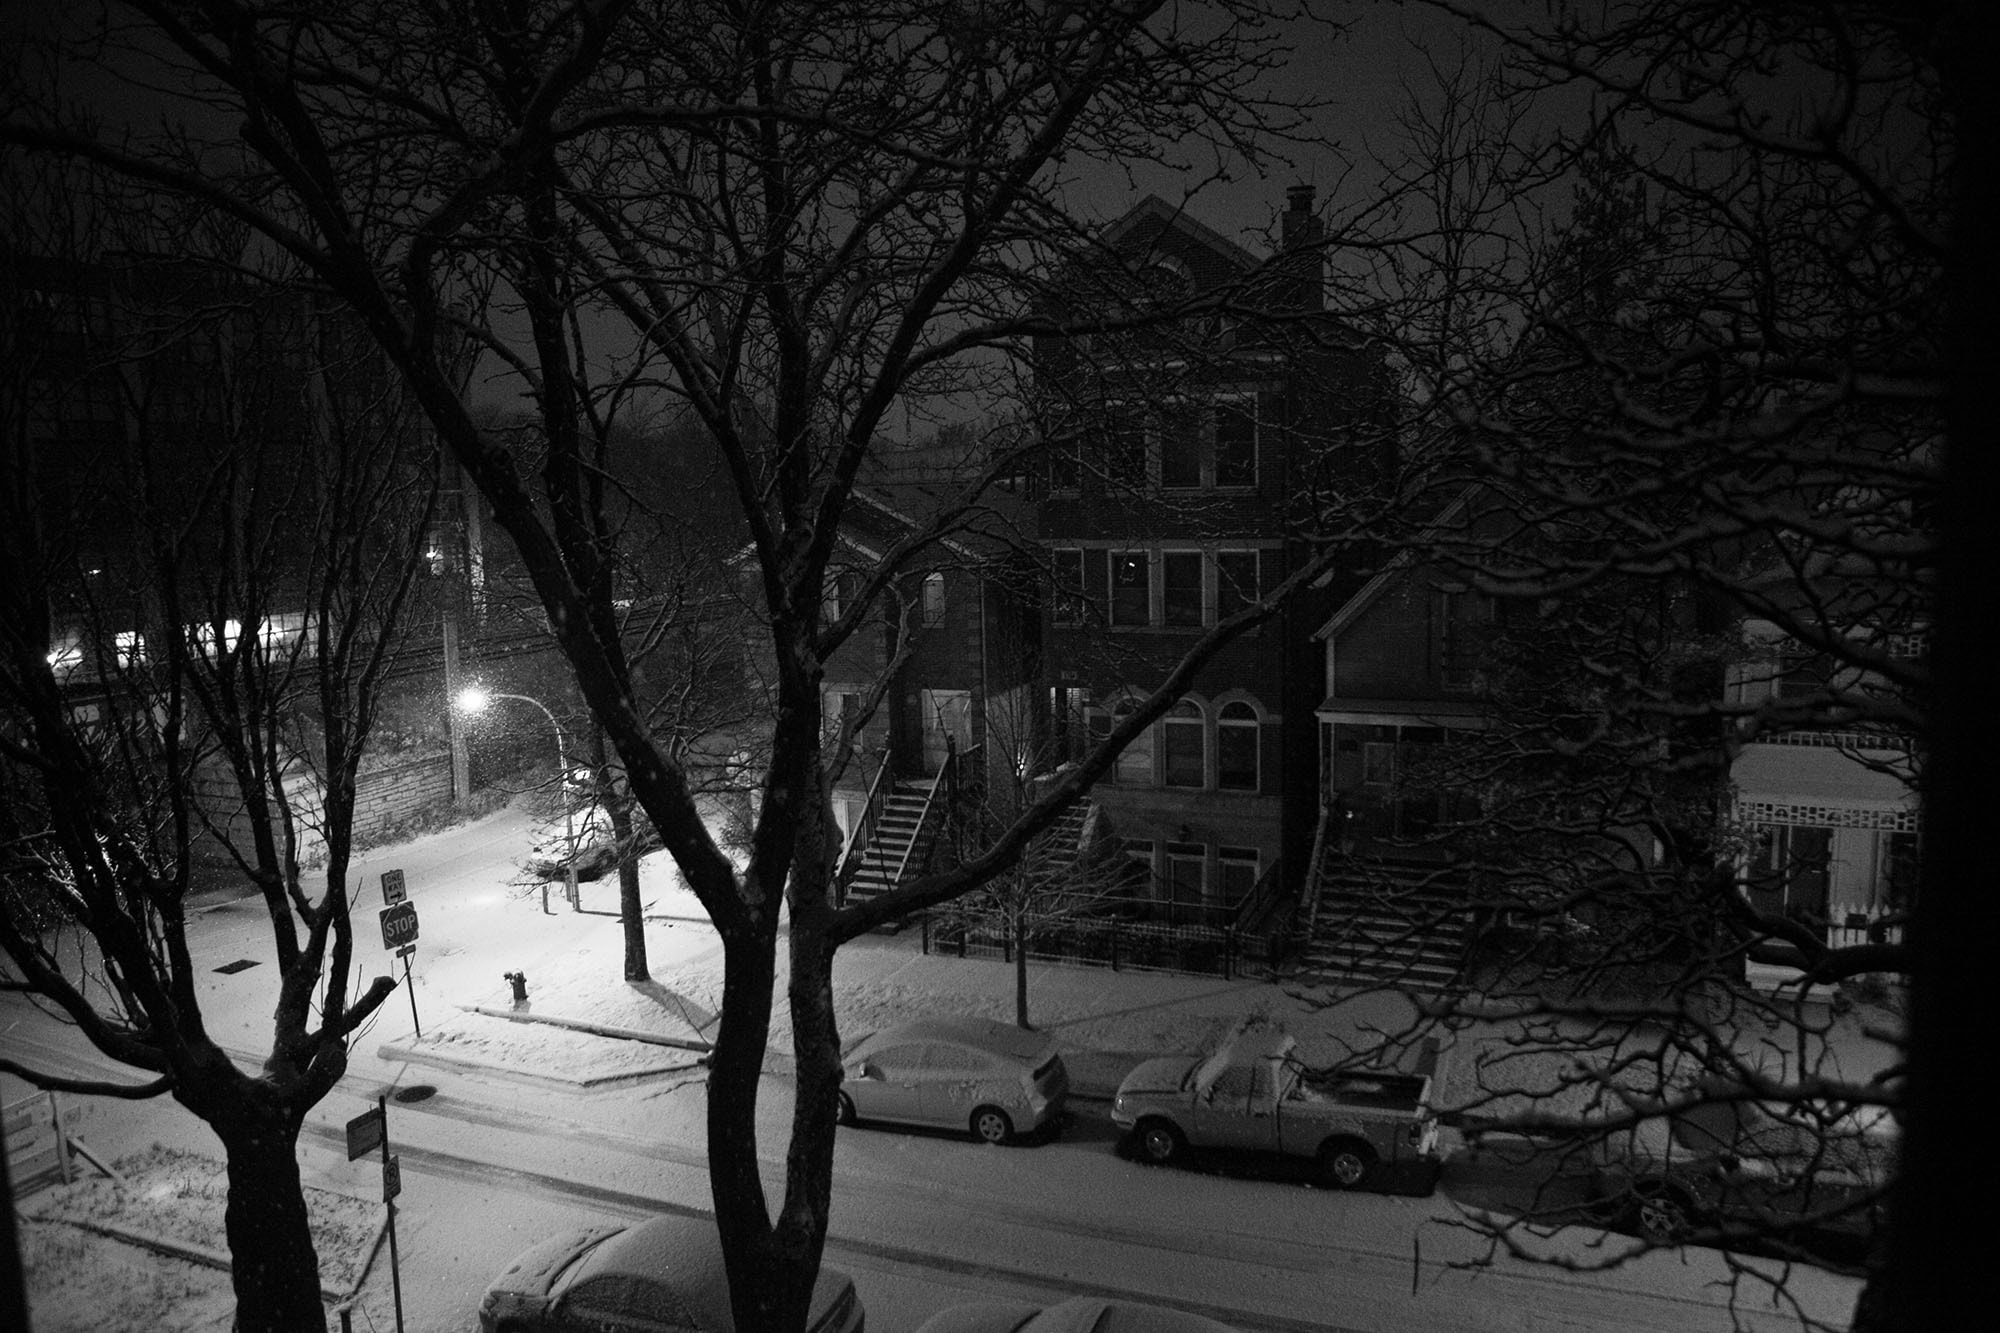 First snow of the season in Chicago. 4:30am. 6400 ISO. Snow.